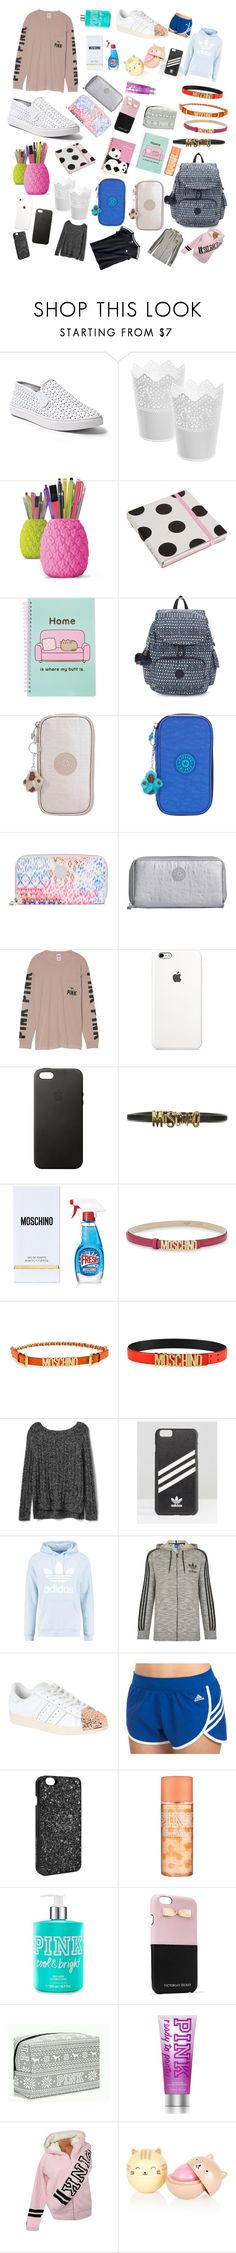 """""""Sin título #46"""" by fragolinapiu ❤ liked on Polyvore featuring beauty, Steve Madden, Caroline Gardner, Pusheen, Kipling, Victoria's Secret, Apple, Moschino, Gap and adidas"""